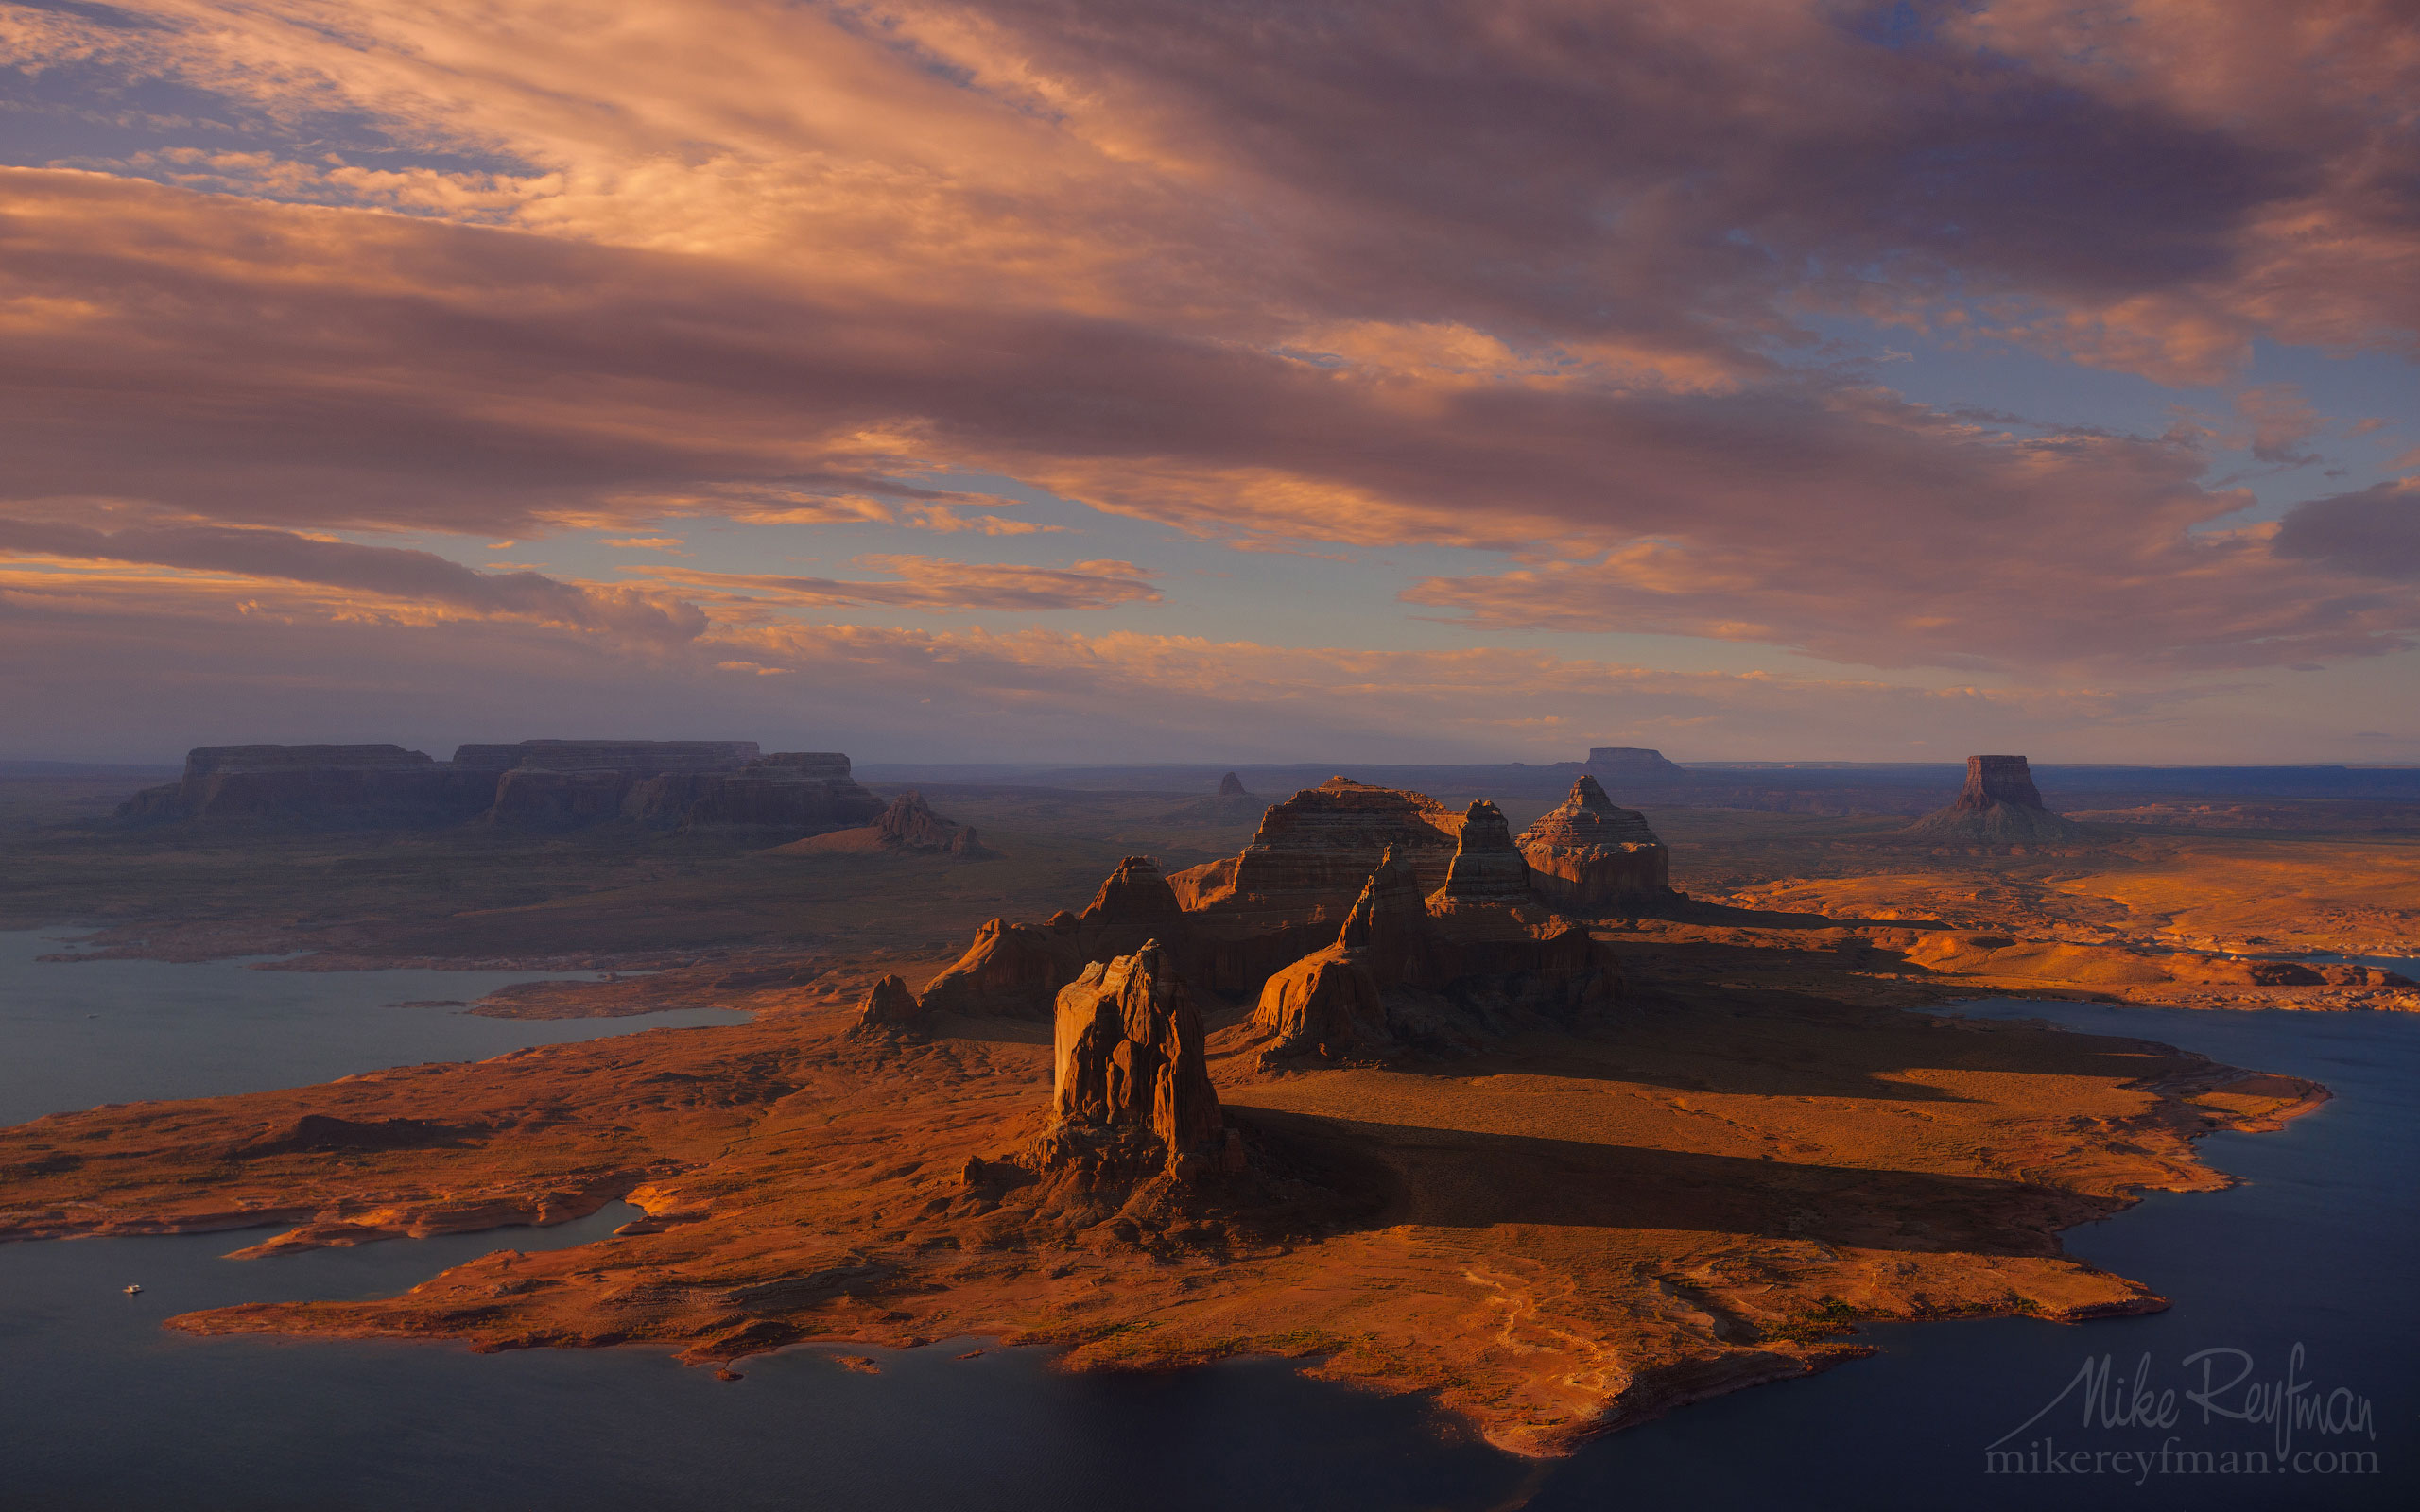 Dominguez and Boundary Buttes with Tower Butte in the distance. South Side of Padre Bay. Lake Powell, Glen Canyon NRA, Utah/Arizona, USA. Aerial. 059-LP3_O3X5565.jpg - Lake Powell, Glen Canyon NAR. Colorado and Sun Juan Rivers. Utah/Arizona, USA  - Mike Reyfman Photography